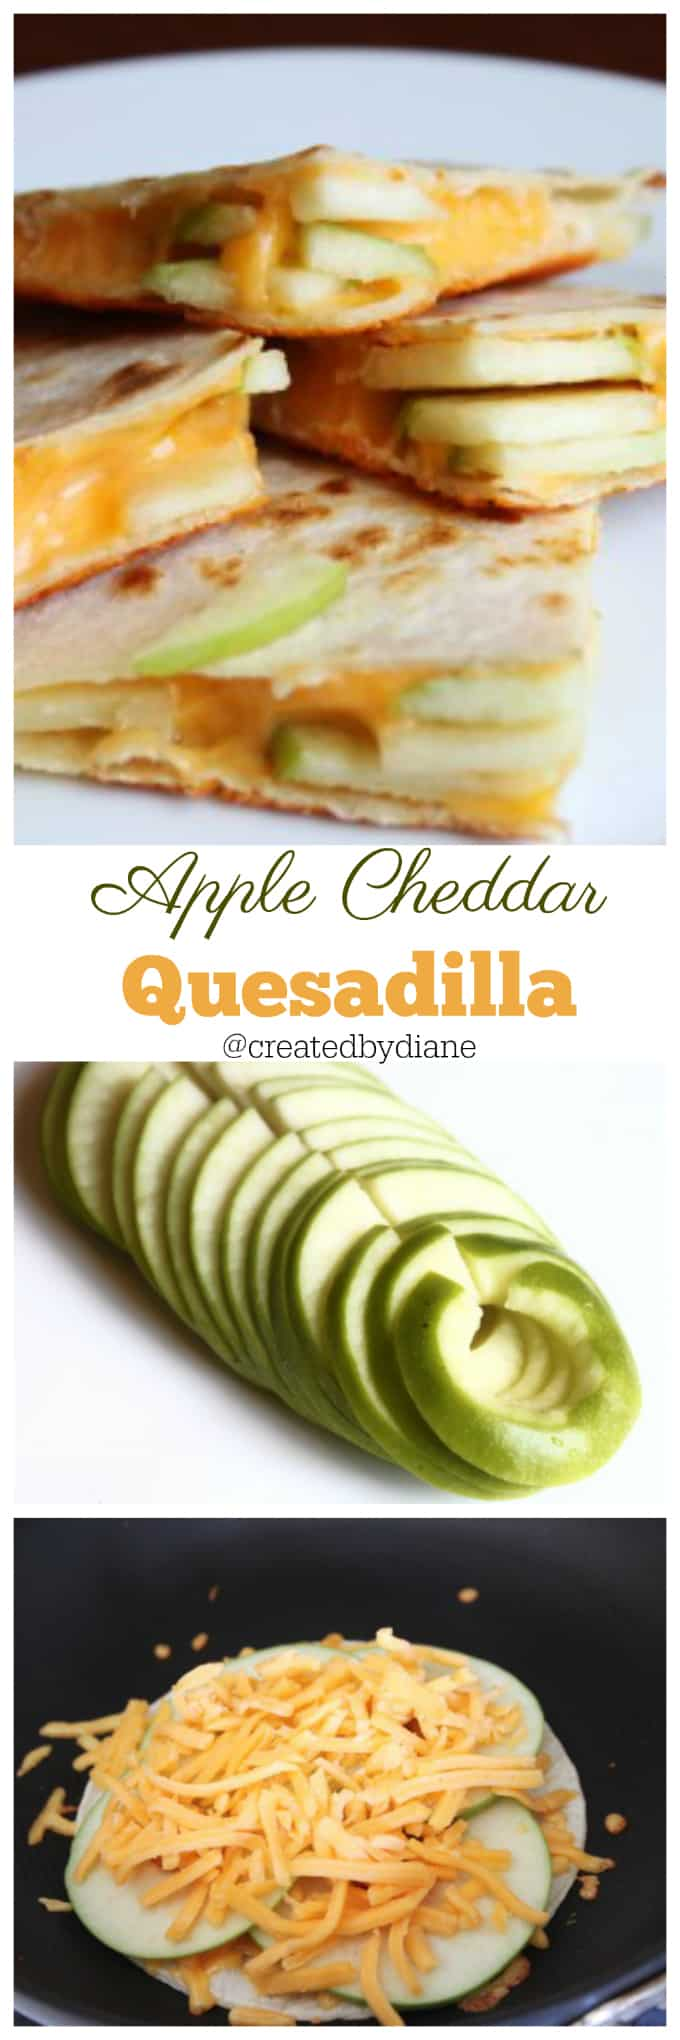 apple cheddar quesadilla @createdbydiane